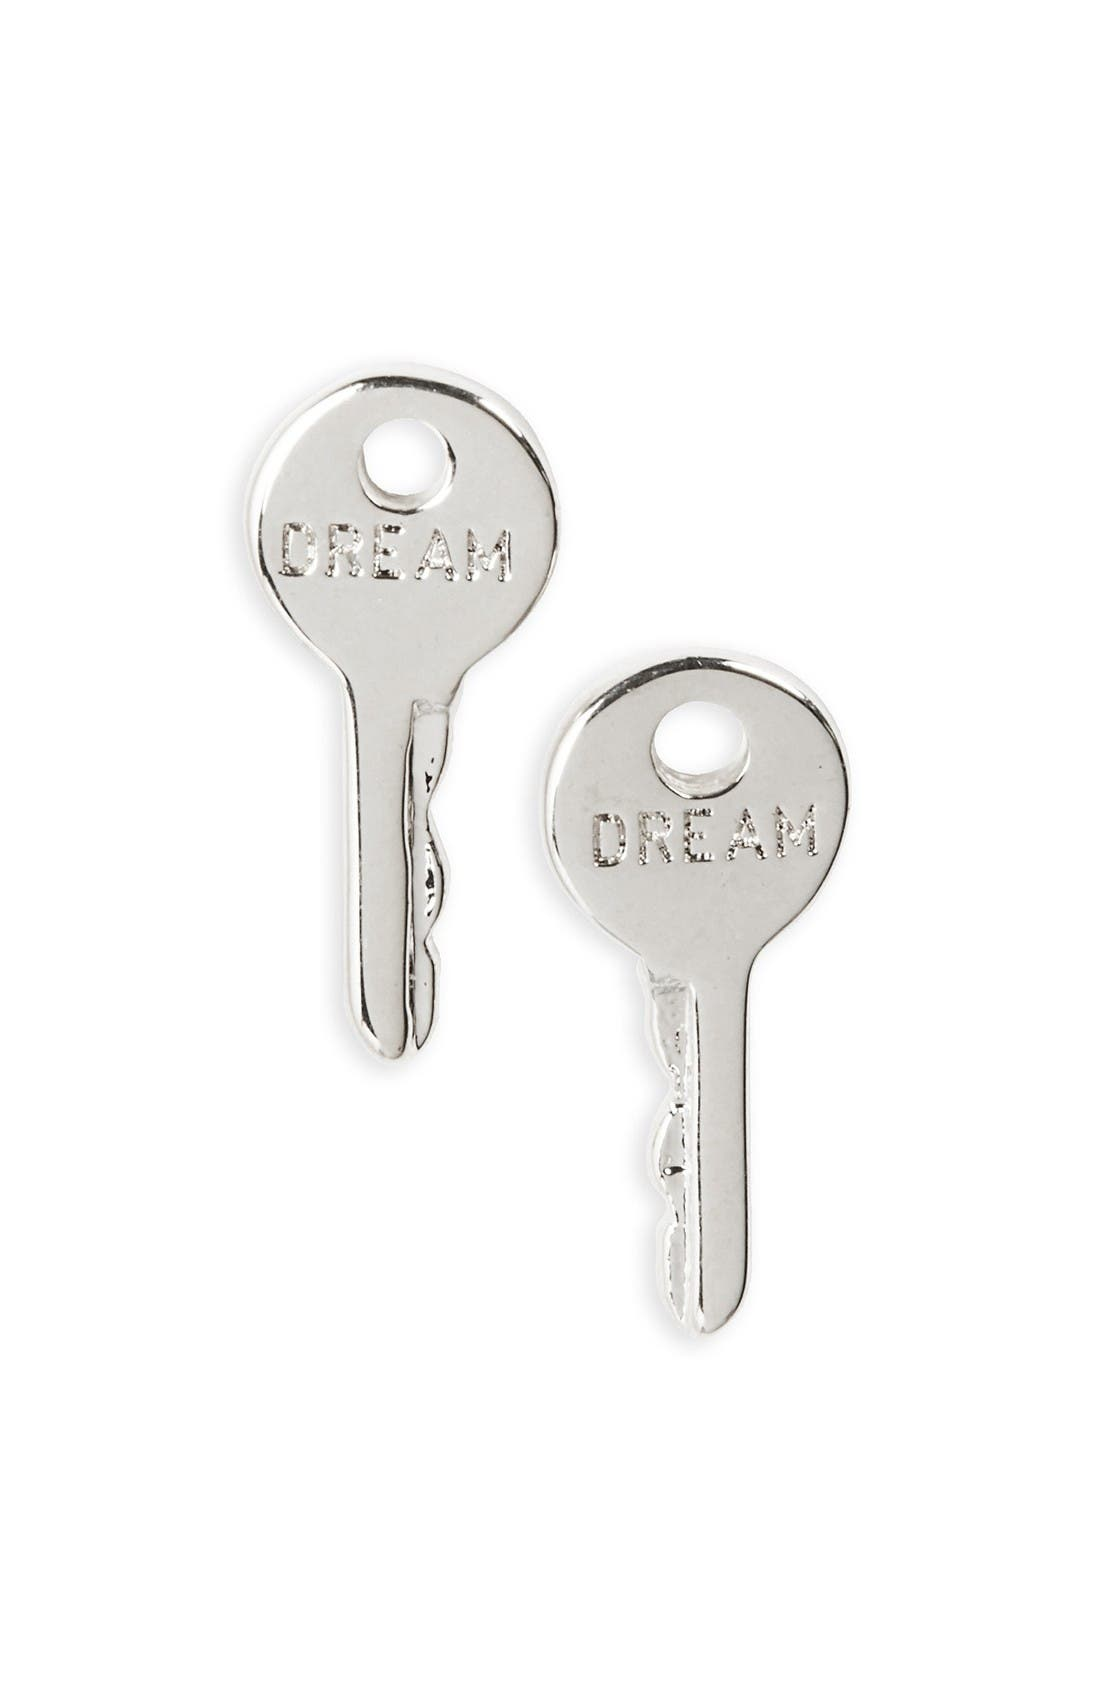 The Giving Keys Dream Mini Stud Earrings